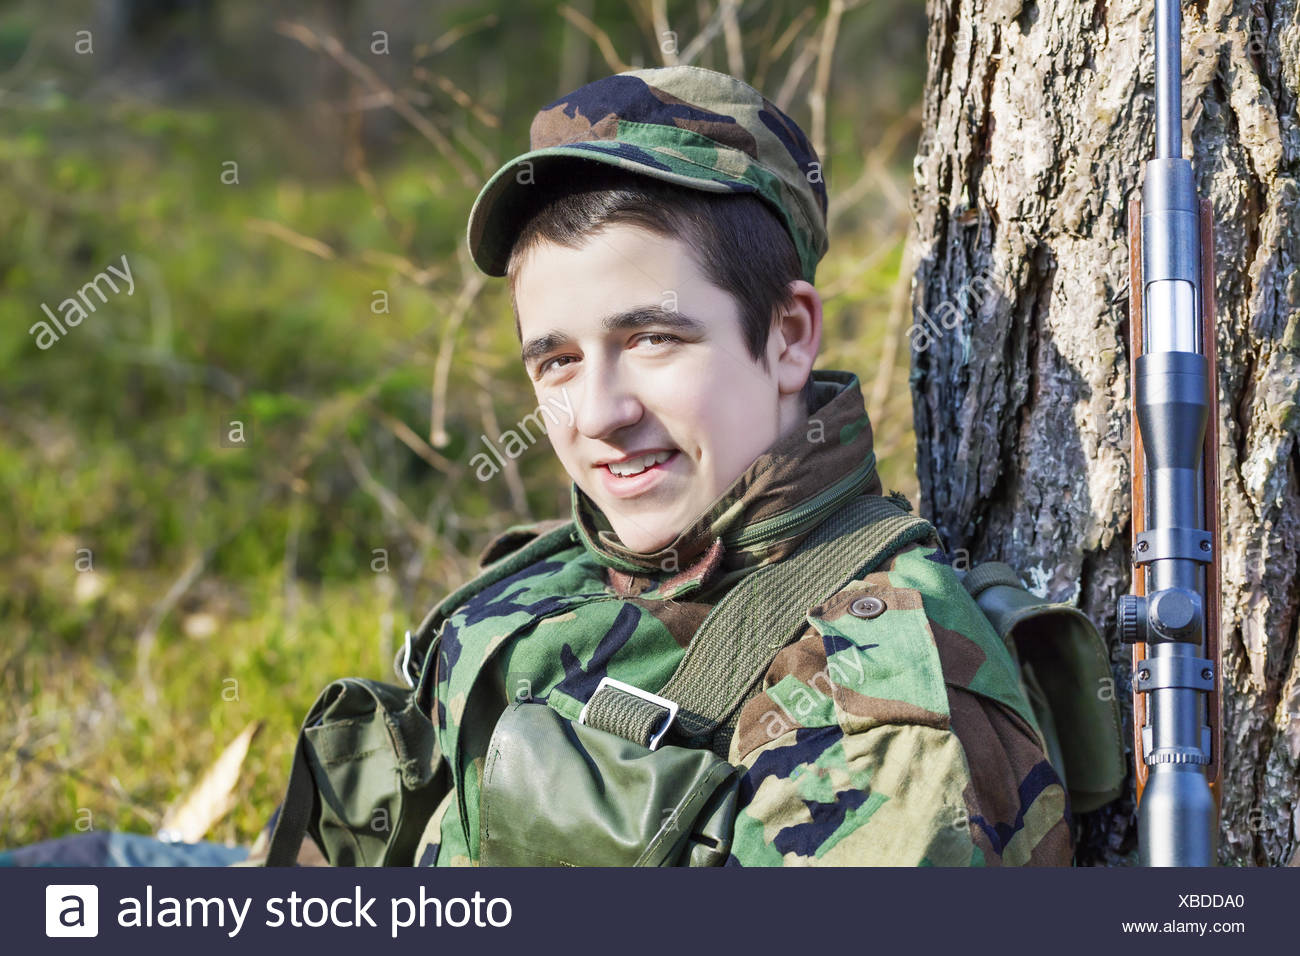 Young recruit with optical rifle in forest - Stock Image